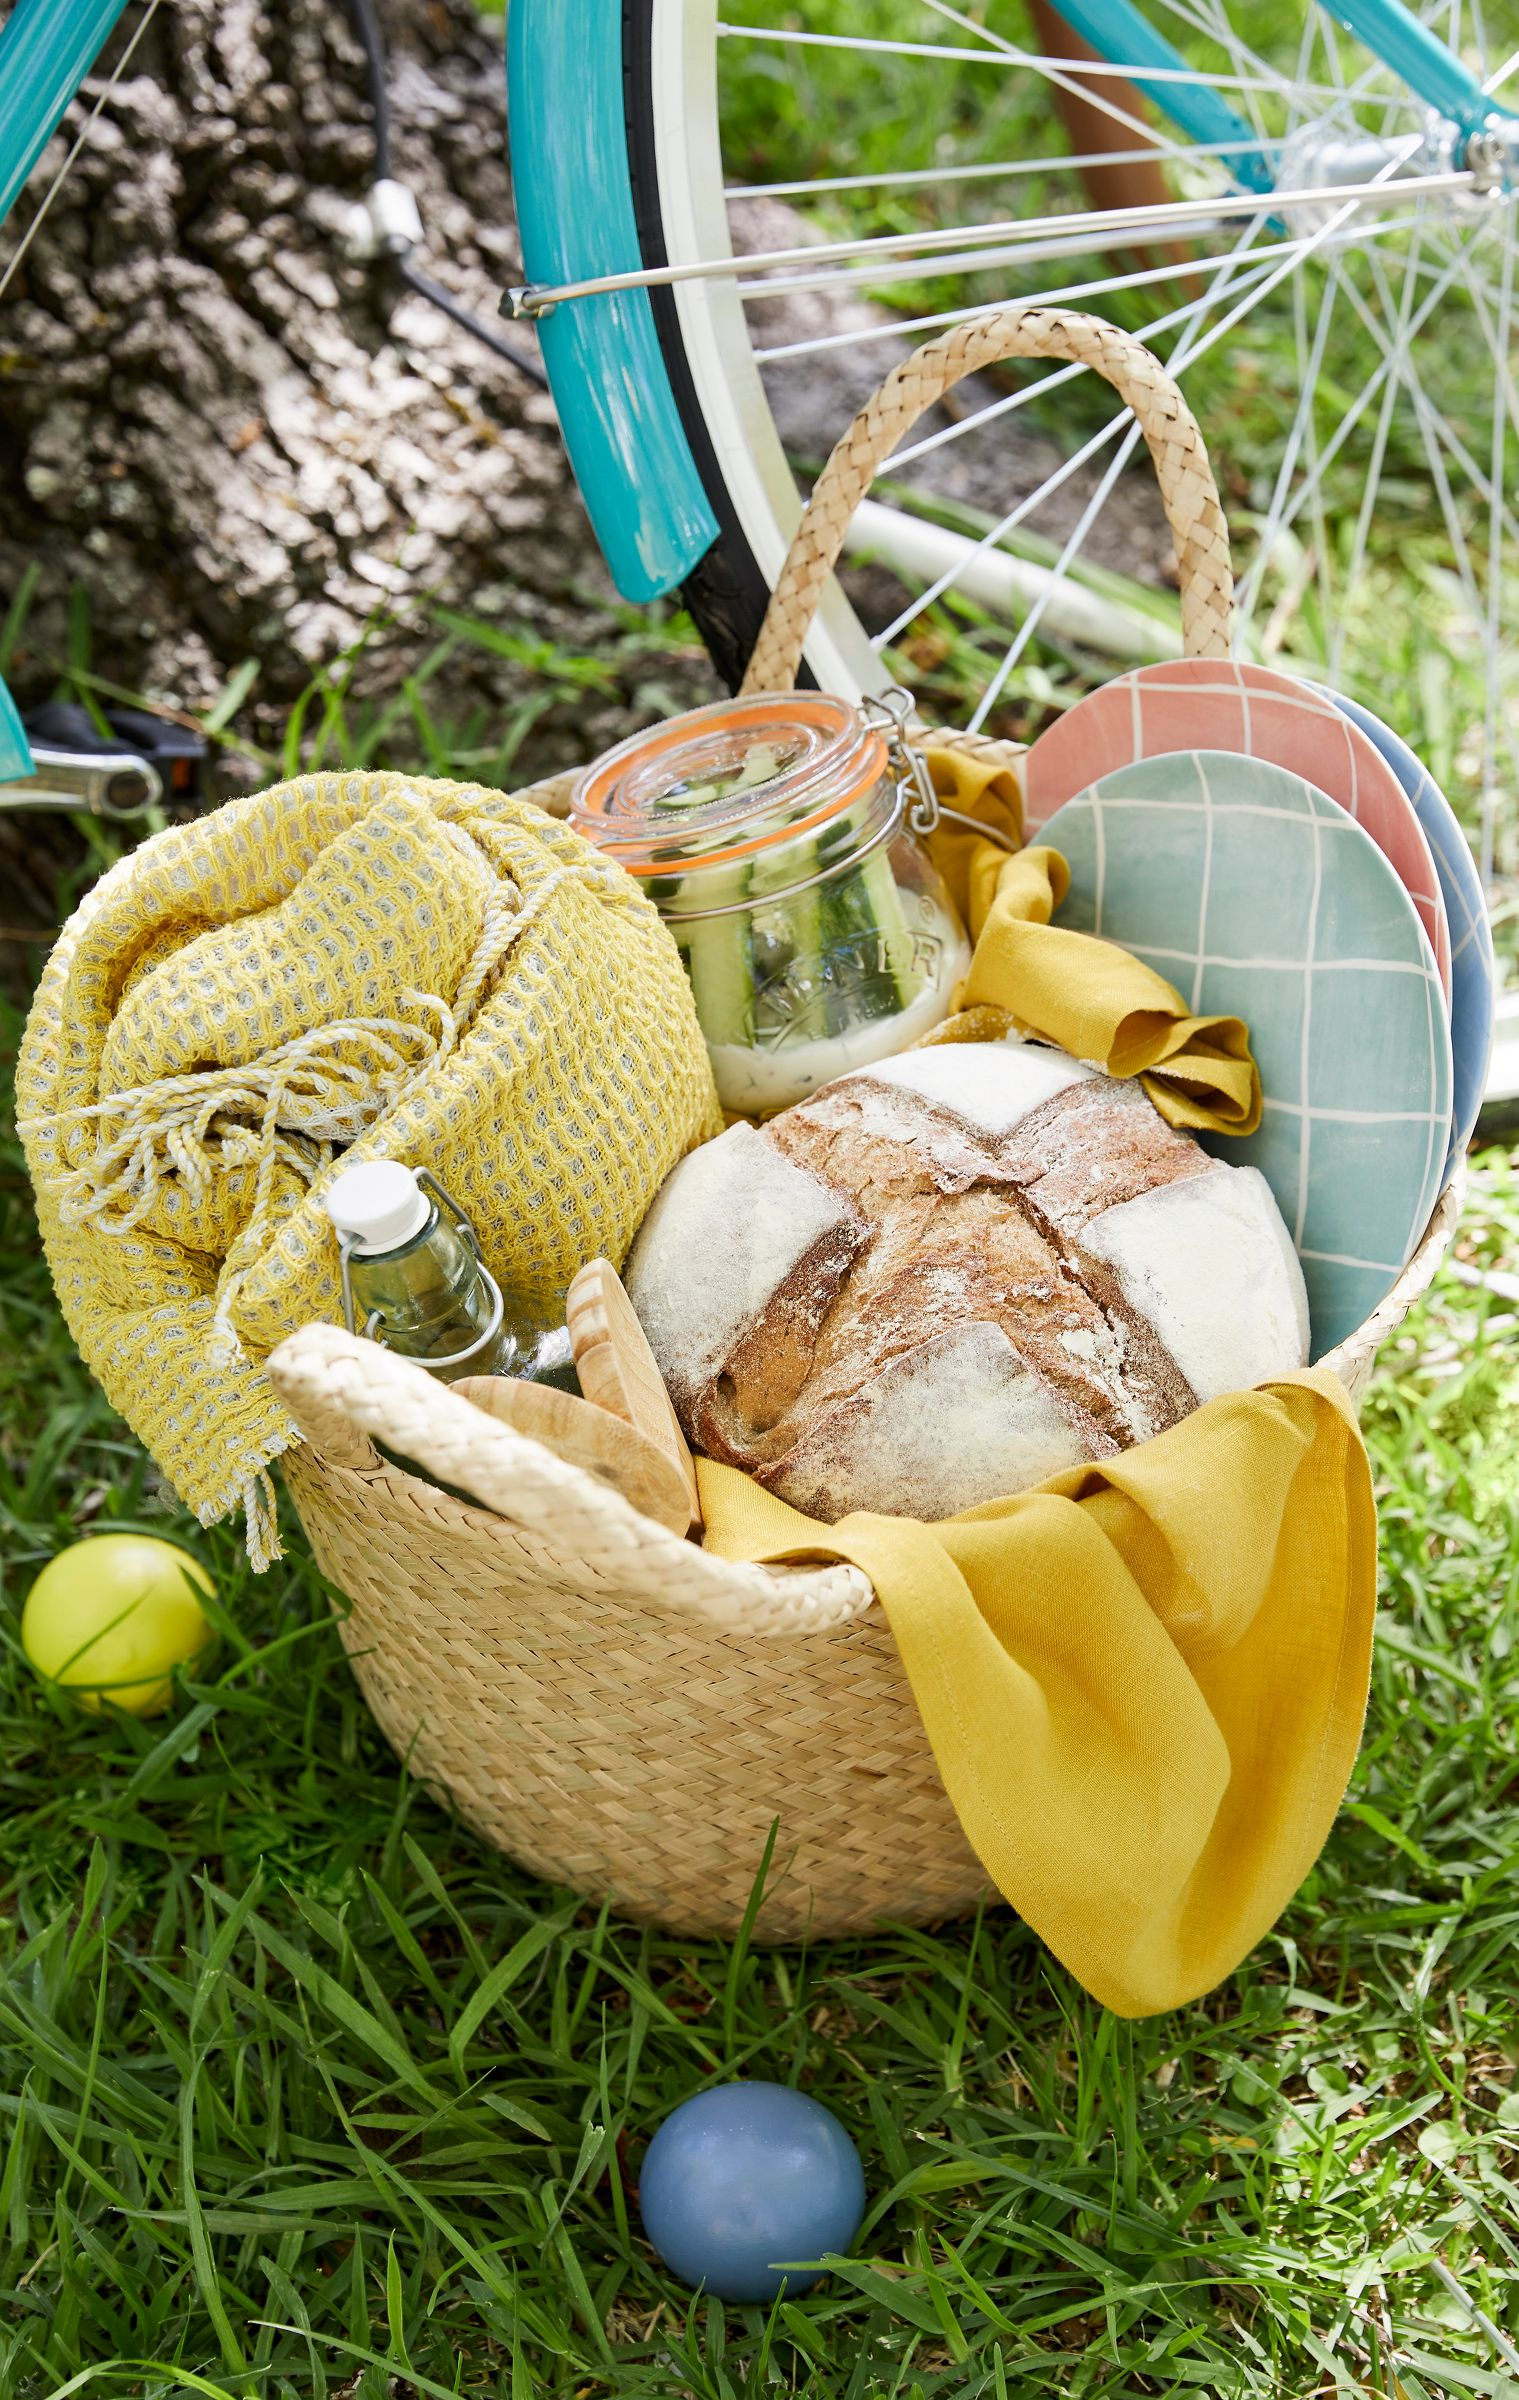 Picnic ideas Basket